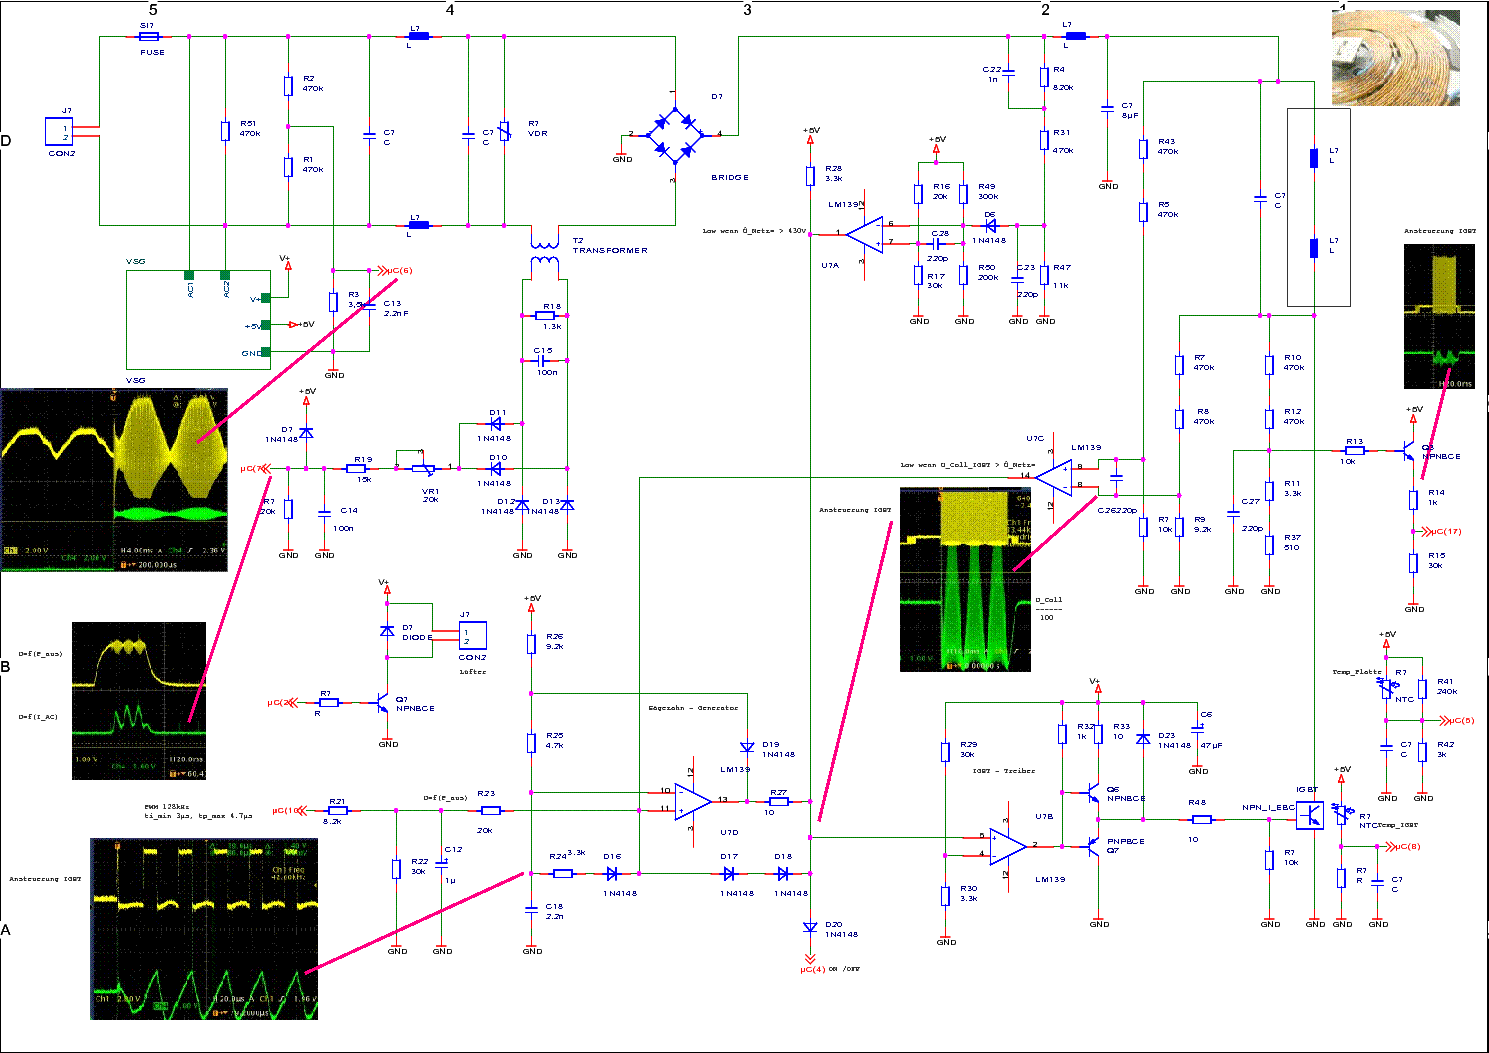 ALASKA INDUCTION COOKING SCHEMATIC WITH OSCILLOGRAM ...